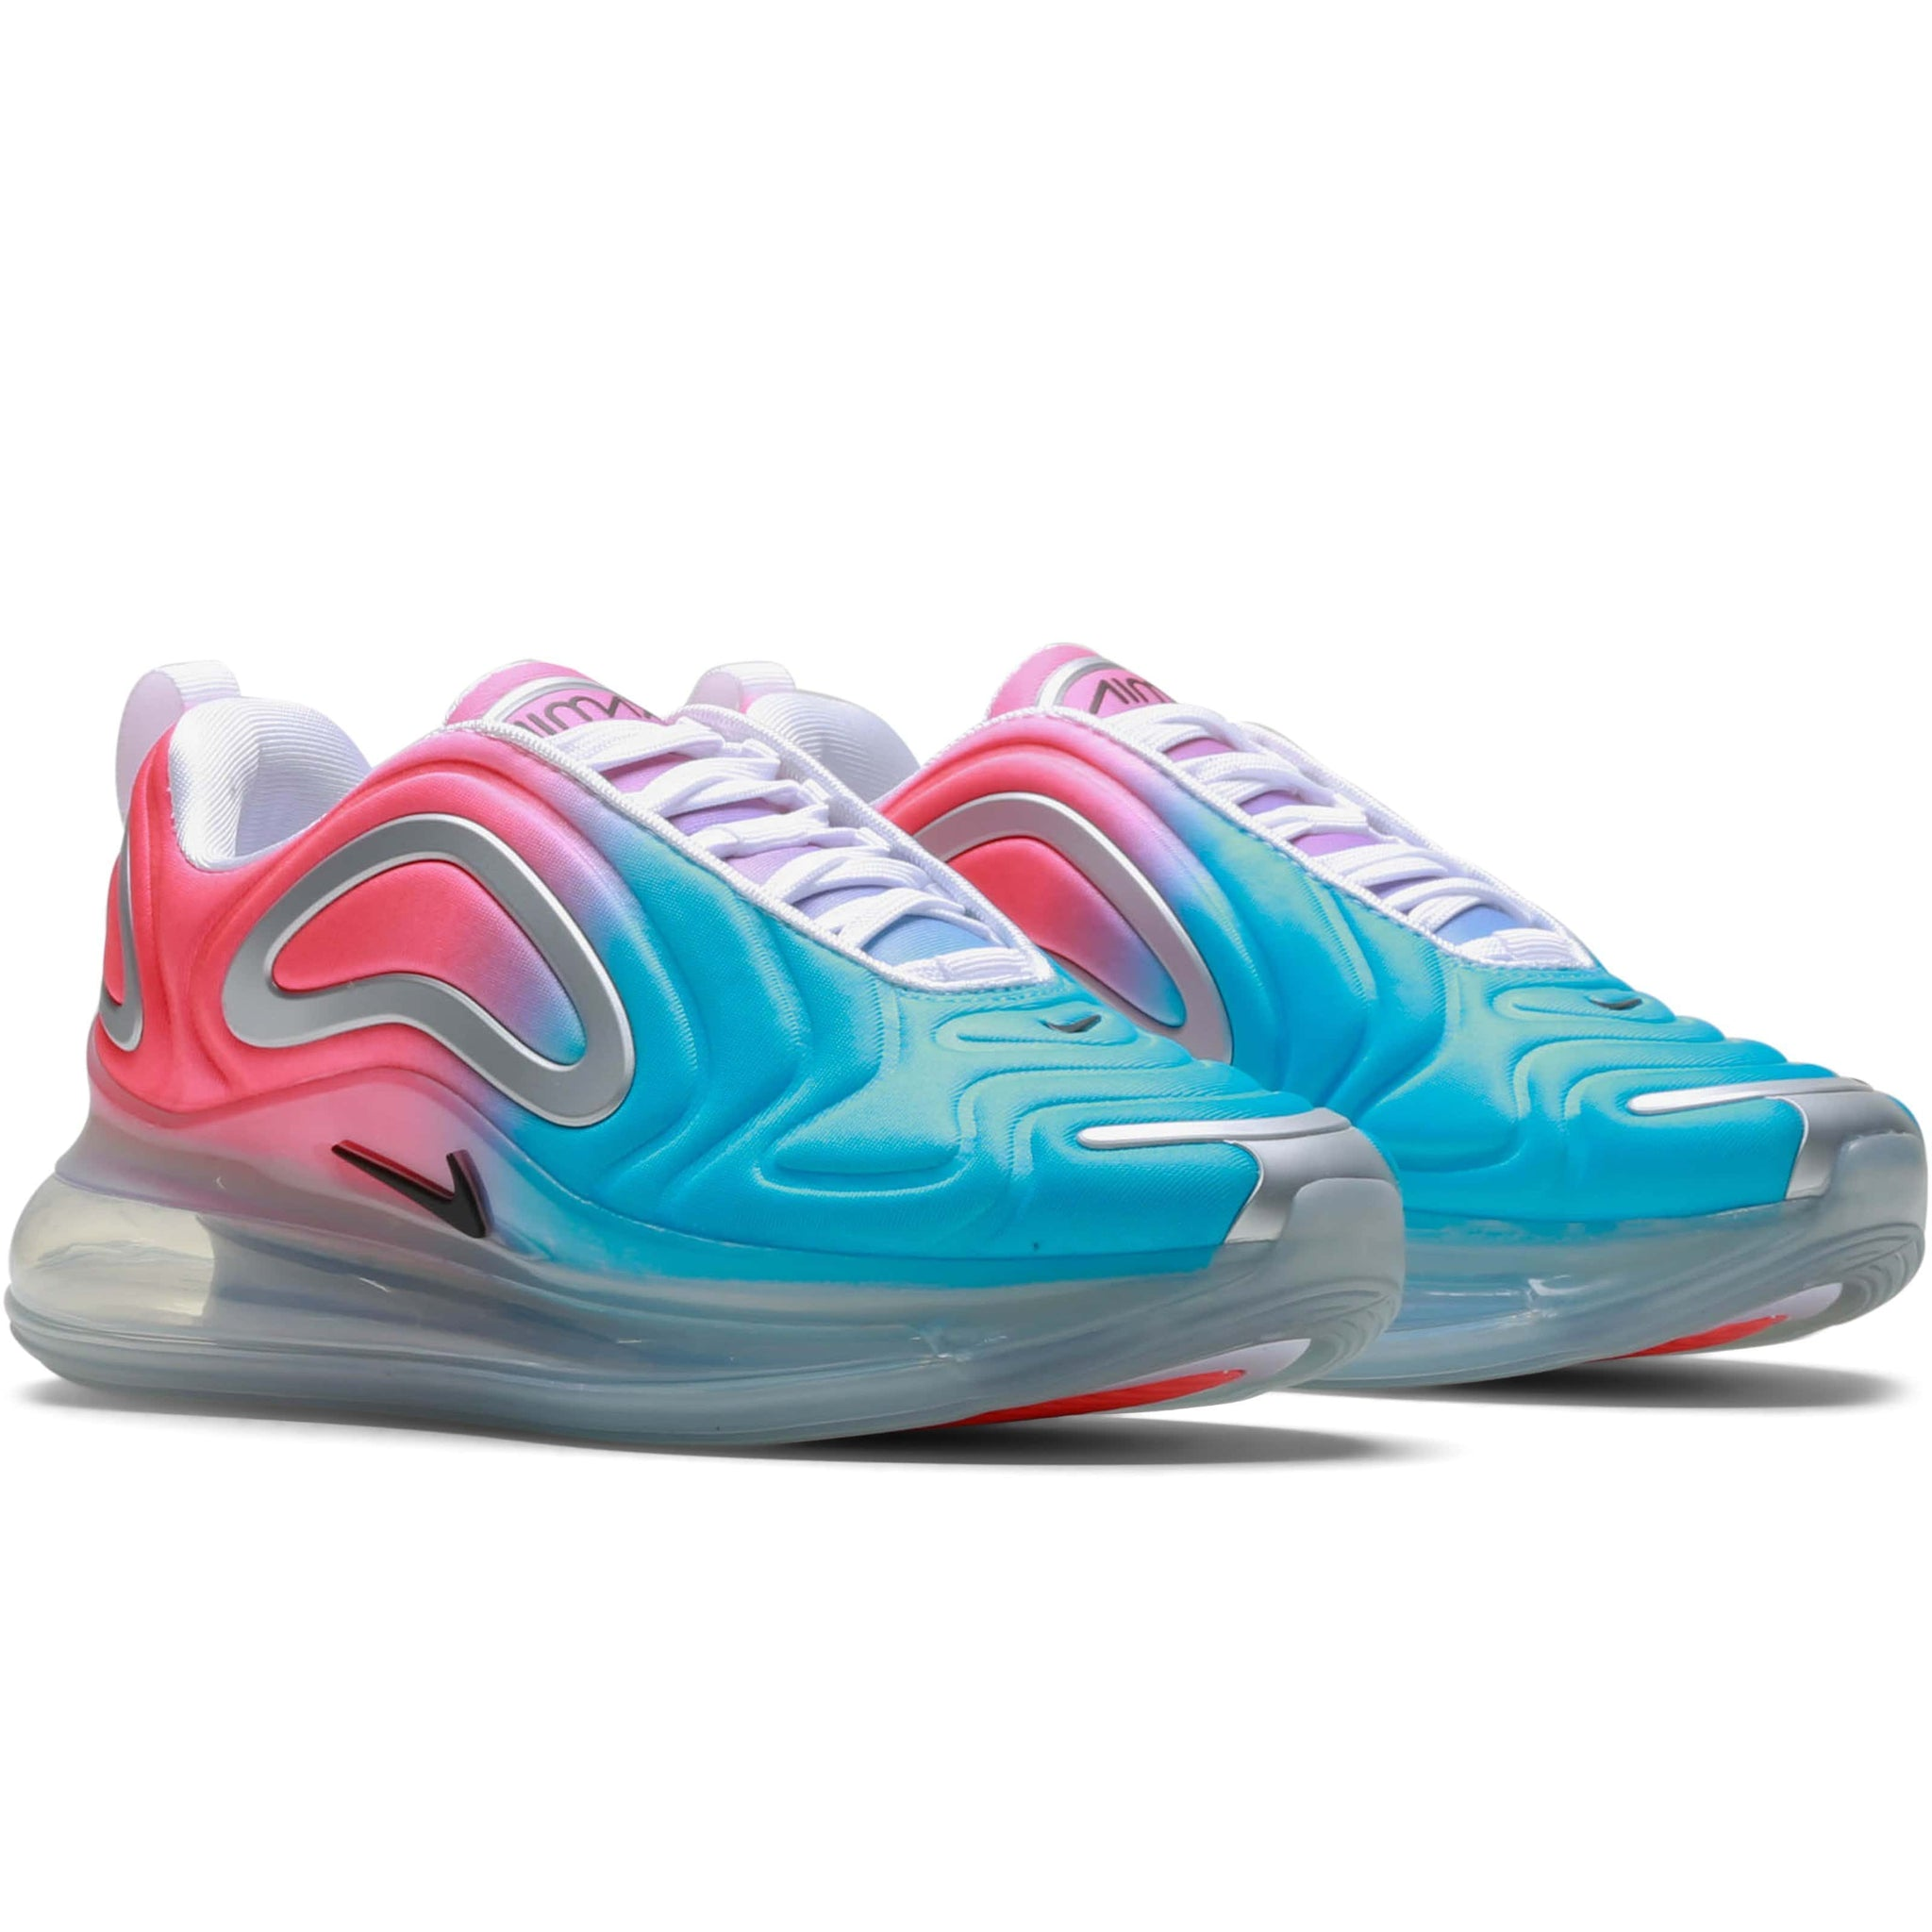 check out 5ad53 0aed4 Nike WOMEN S AIR MAX 720 AR2923 600